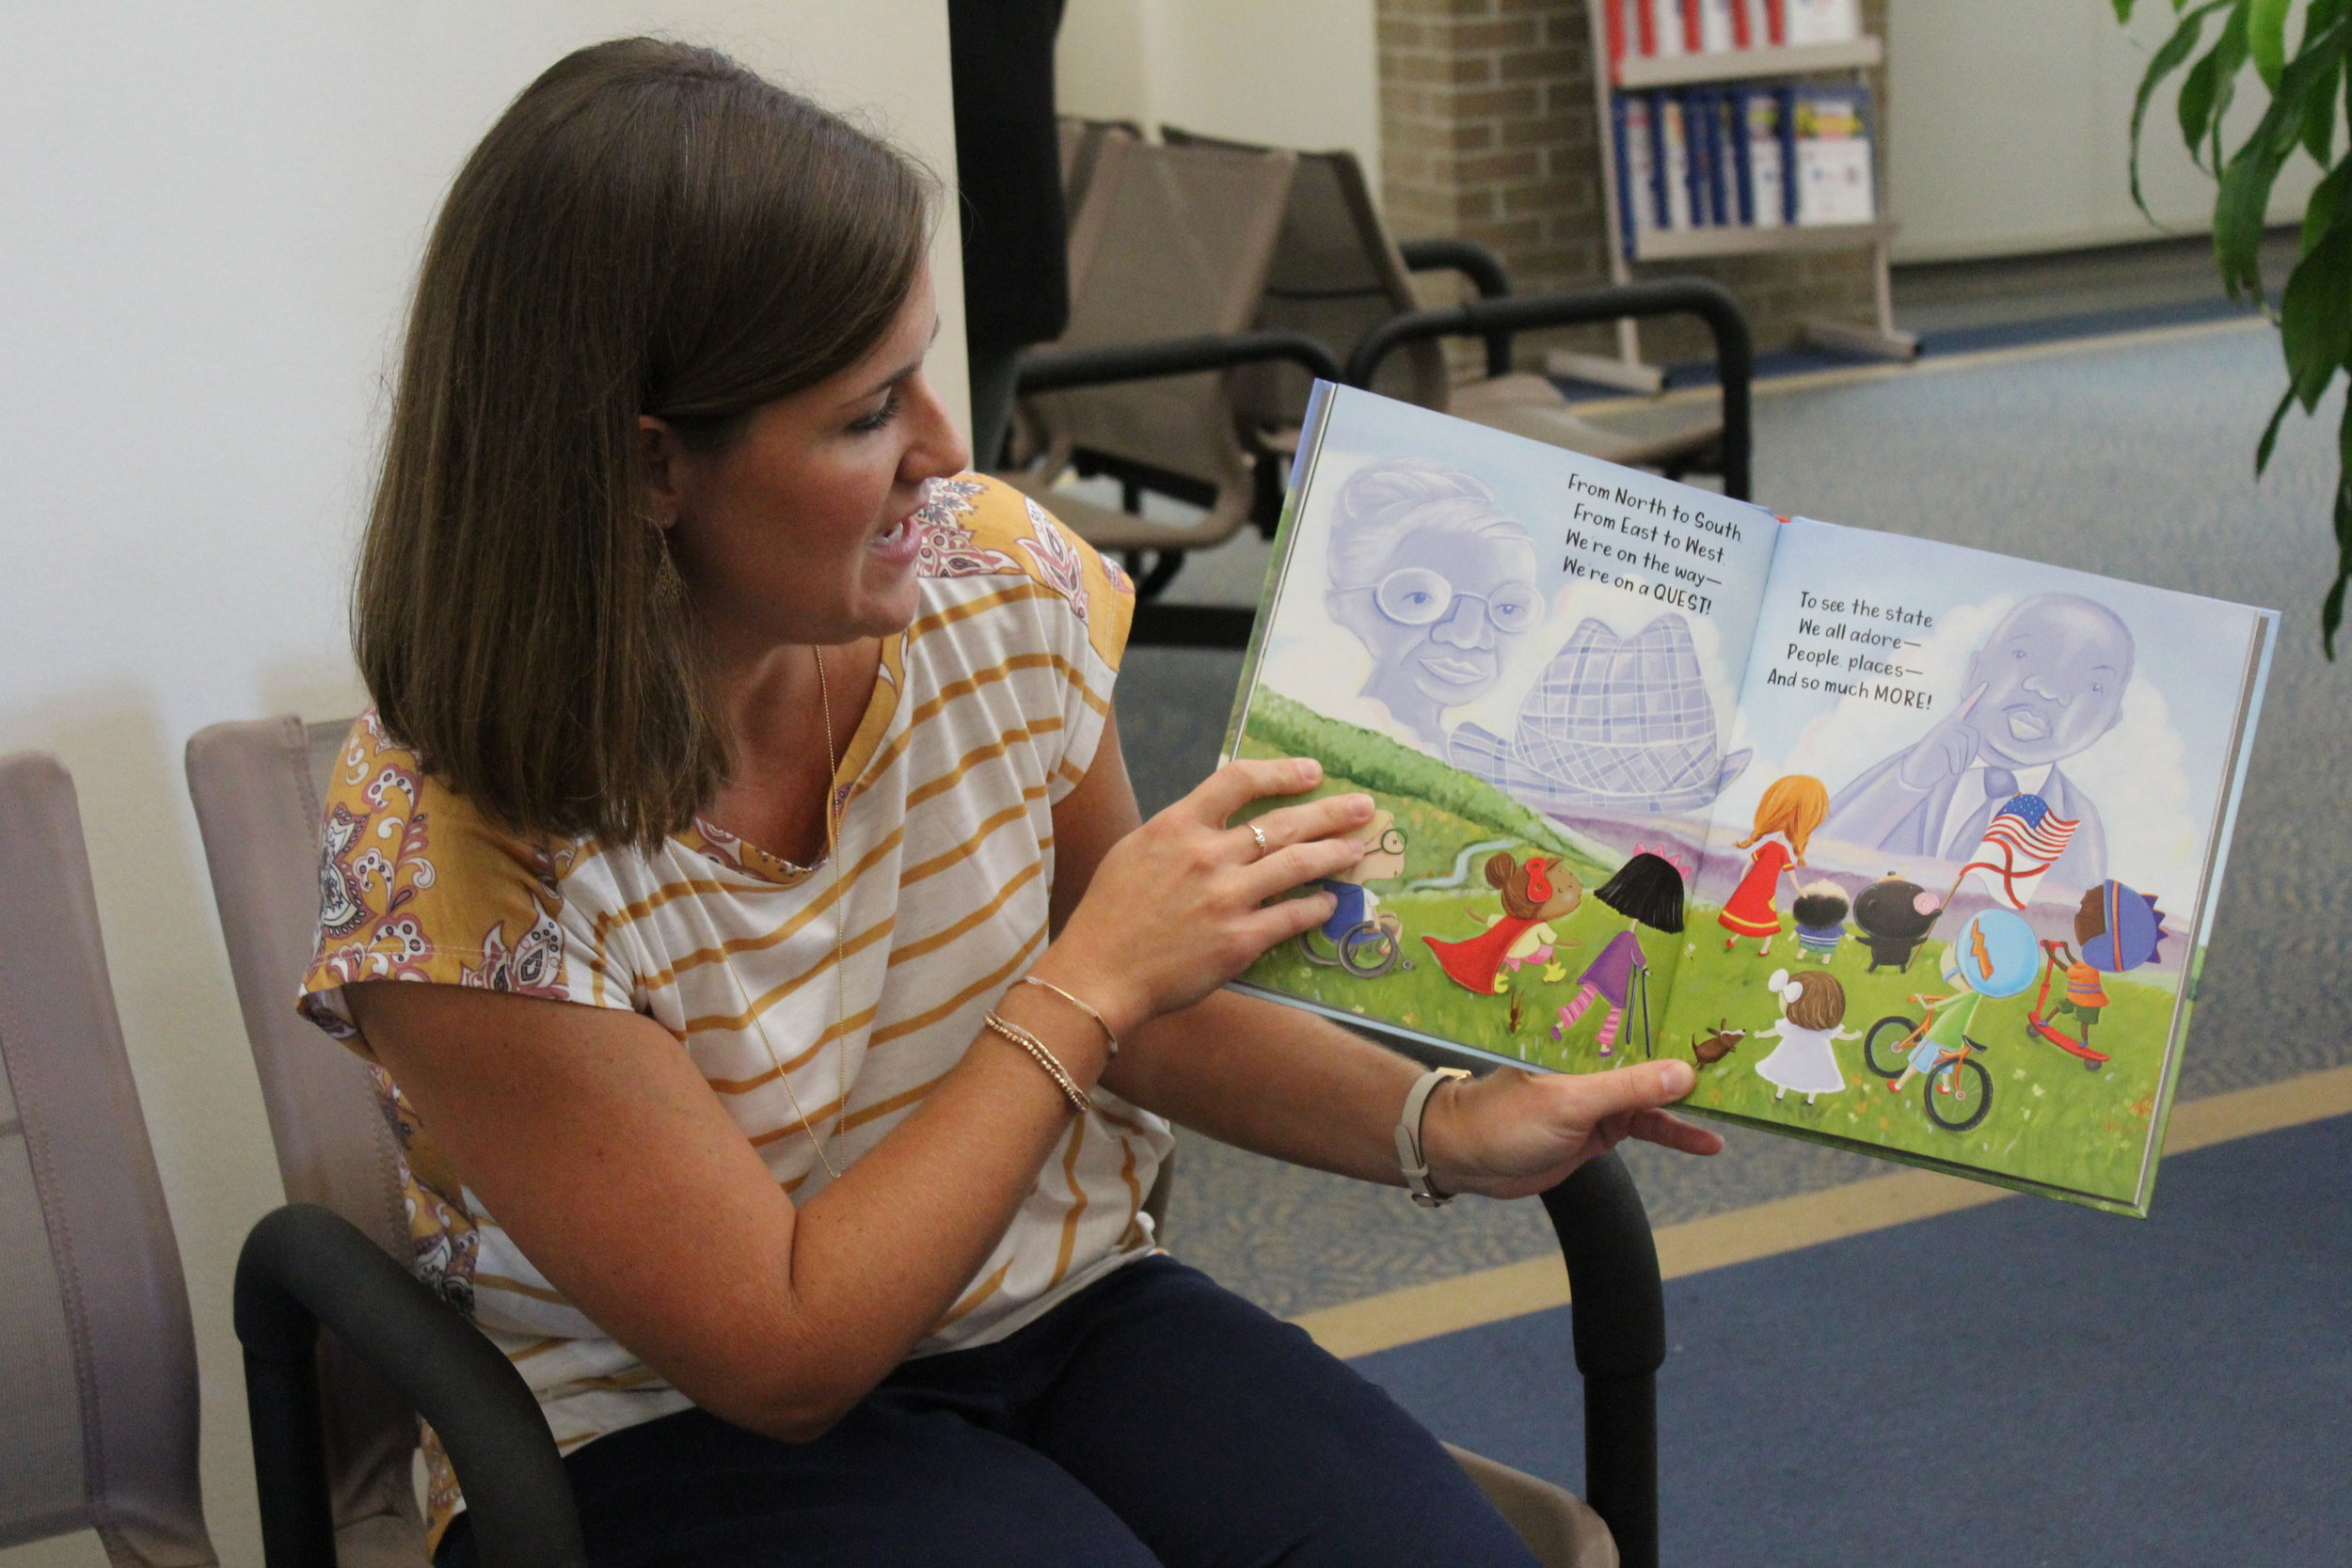 LIndsey fannin, children's librarian at troy public library, read alabama, my home sweet home, to the children in the waiting room